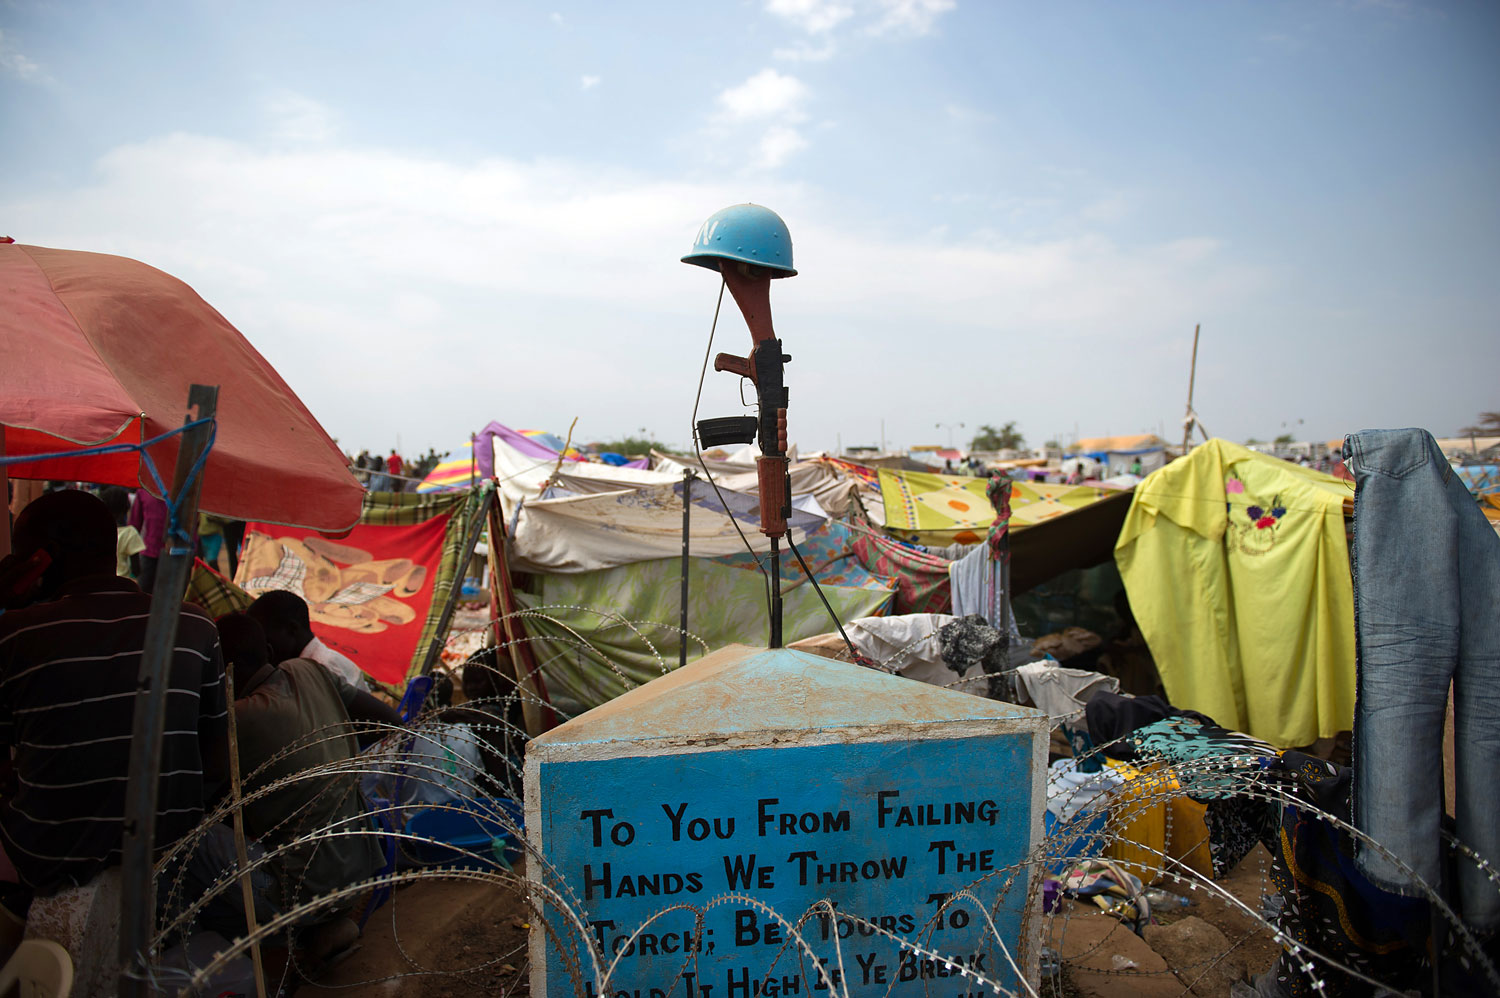 A monument for fallen peacekeepers stands amidst makeshift tents in a spontaneous camp for internally displaced persons at the United Nations Mission to South Sudan base in Juba,  on Jan. 9, 2014.